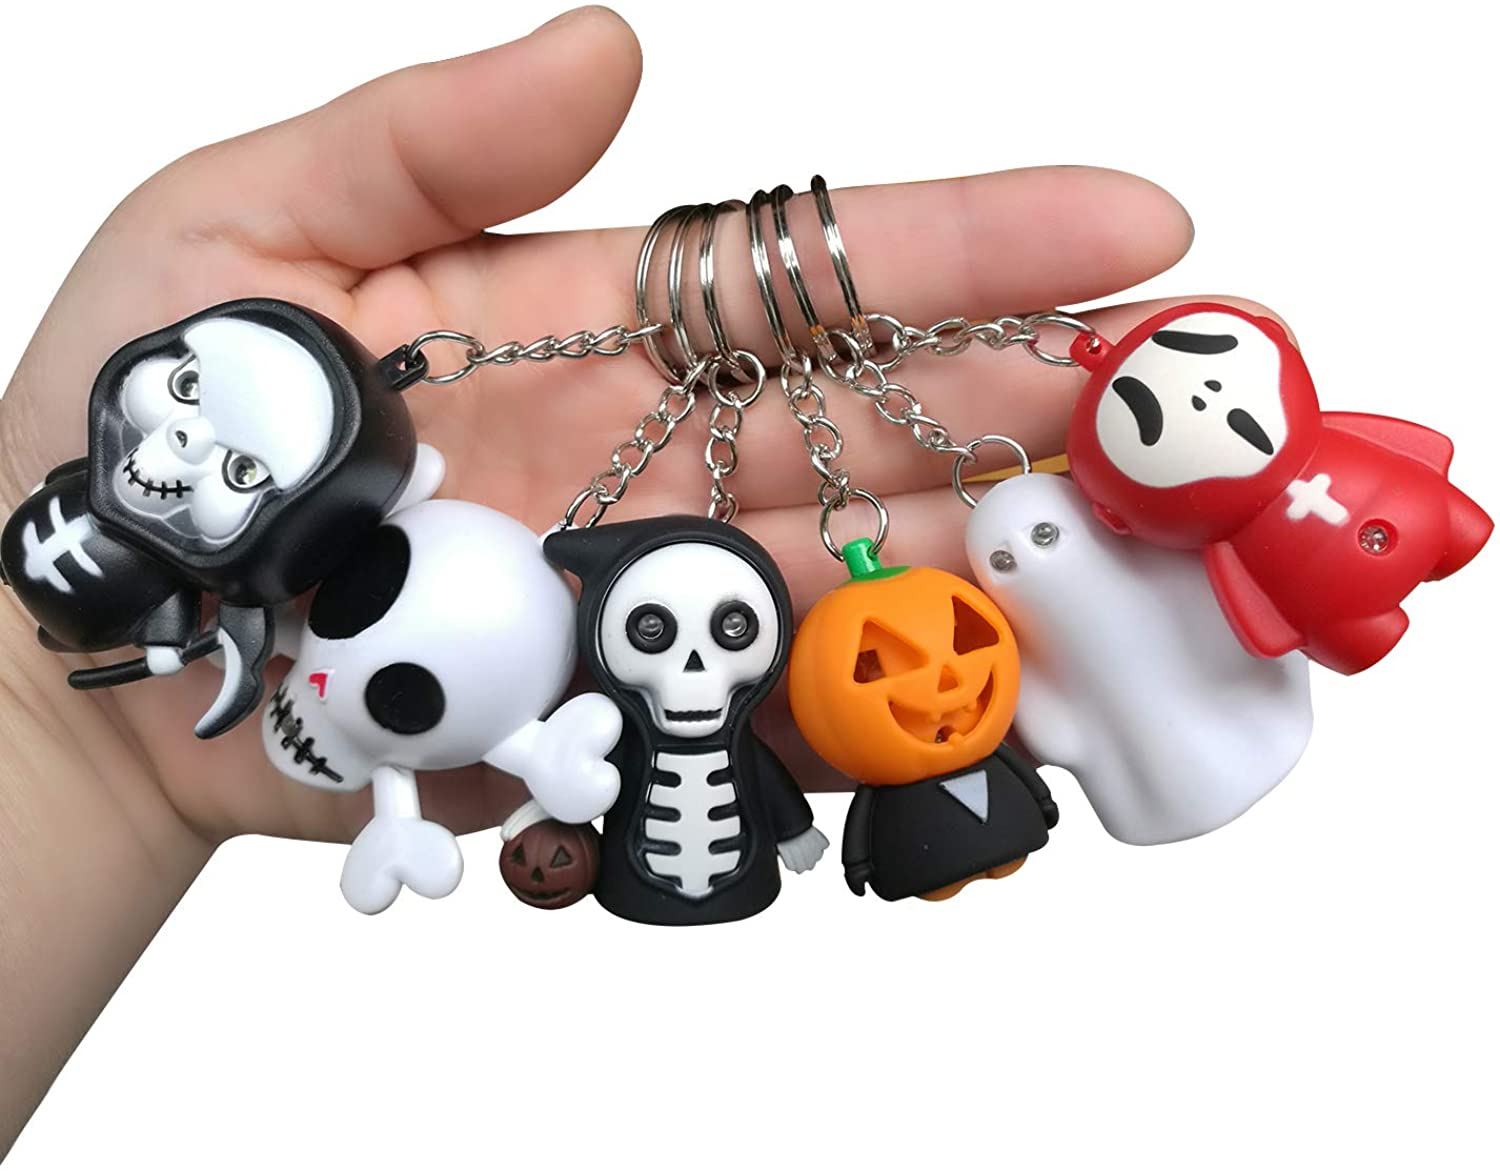 Goldengulf 6pcs/Pack Led Keychain Light with Scary Sound for Halloween Decoration Gift Cute Toy for Kids Key Ring Car Key Holder